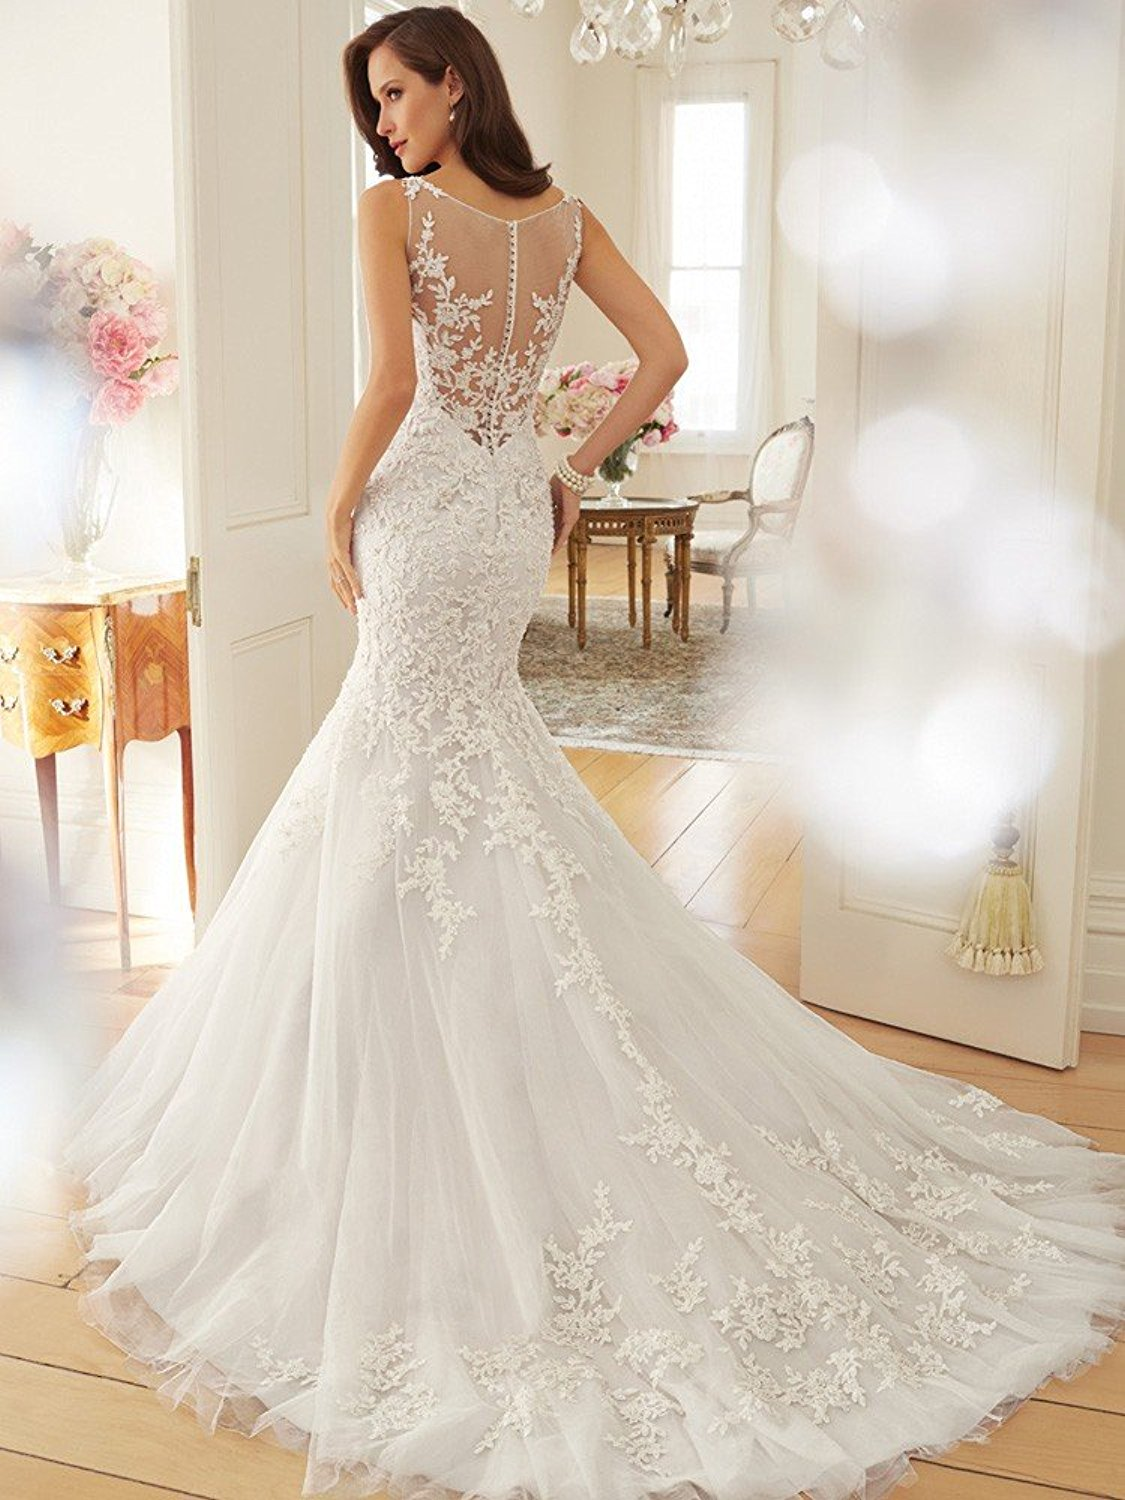 Scoop Appliques See Through Mermaid Bridal Gown Cute Dresses